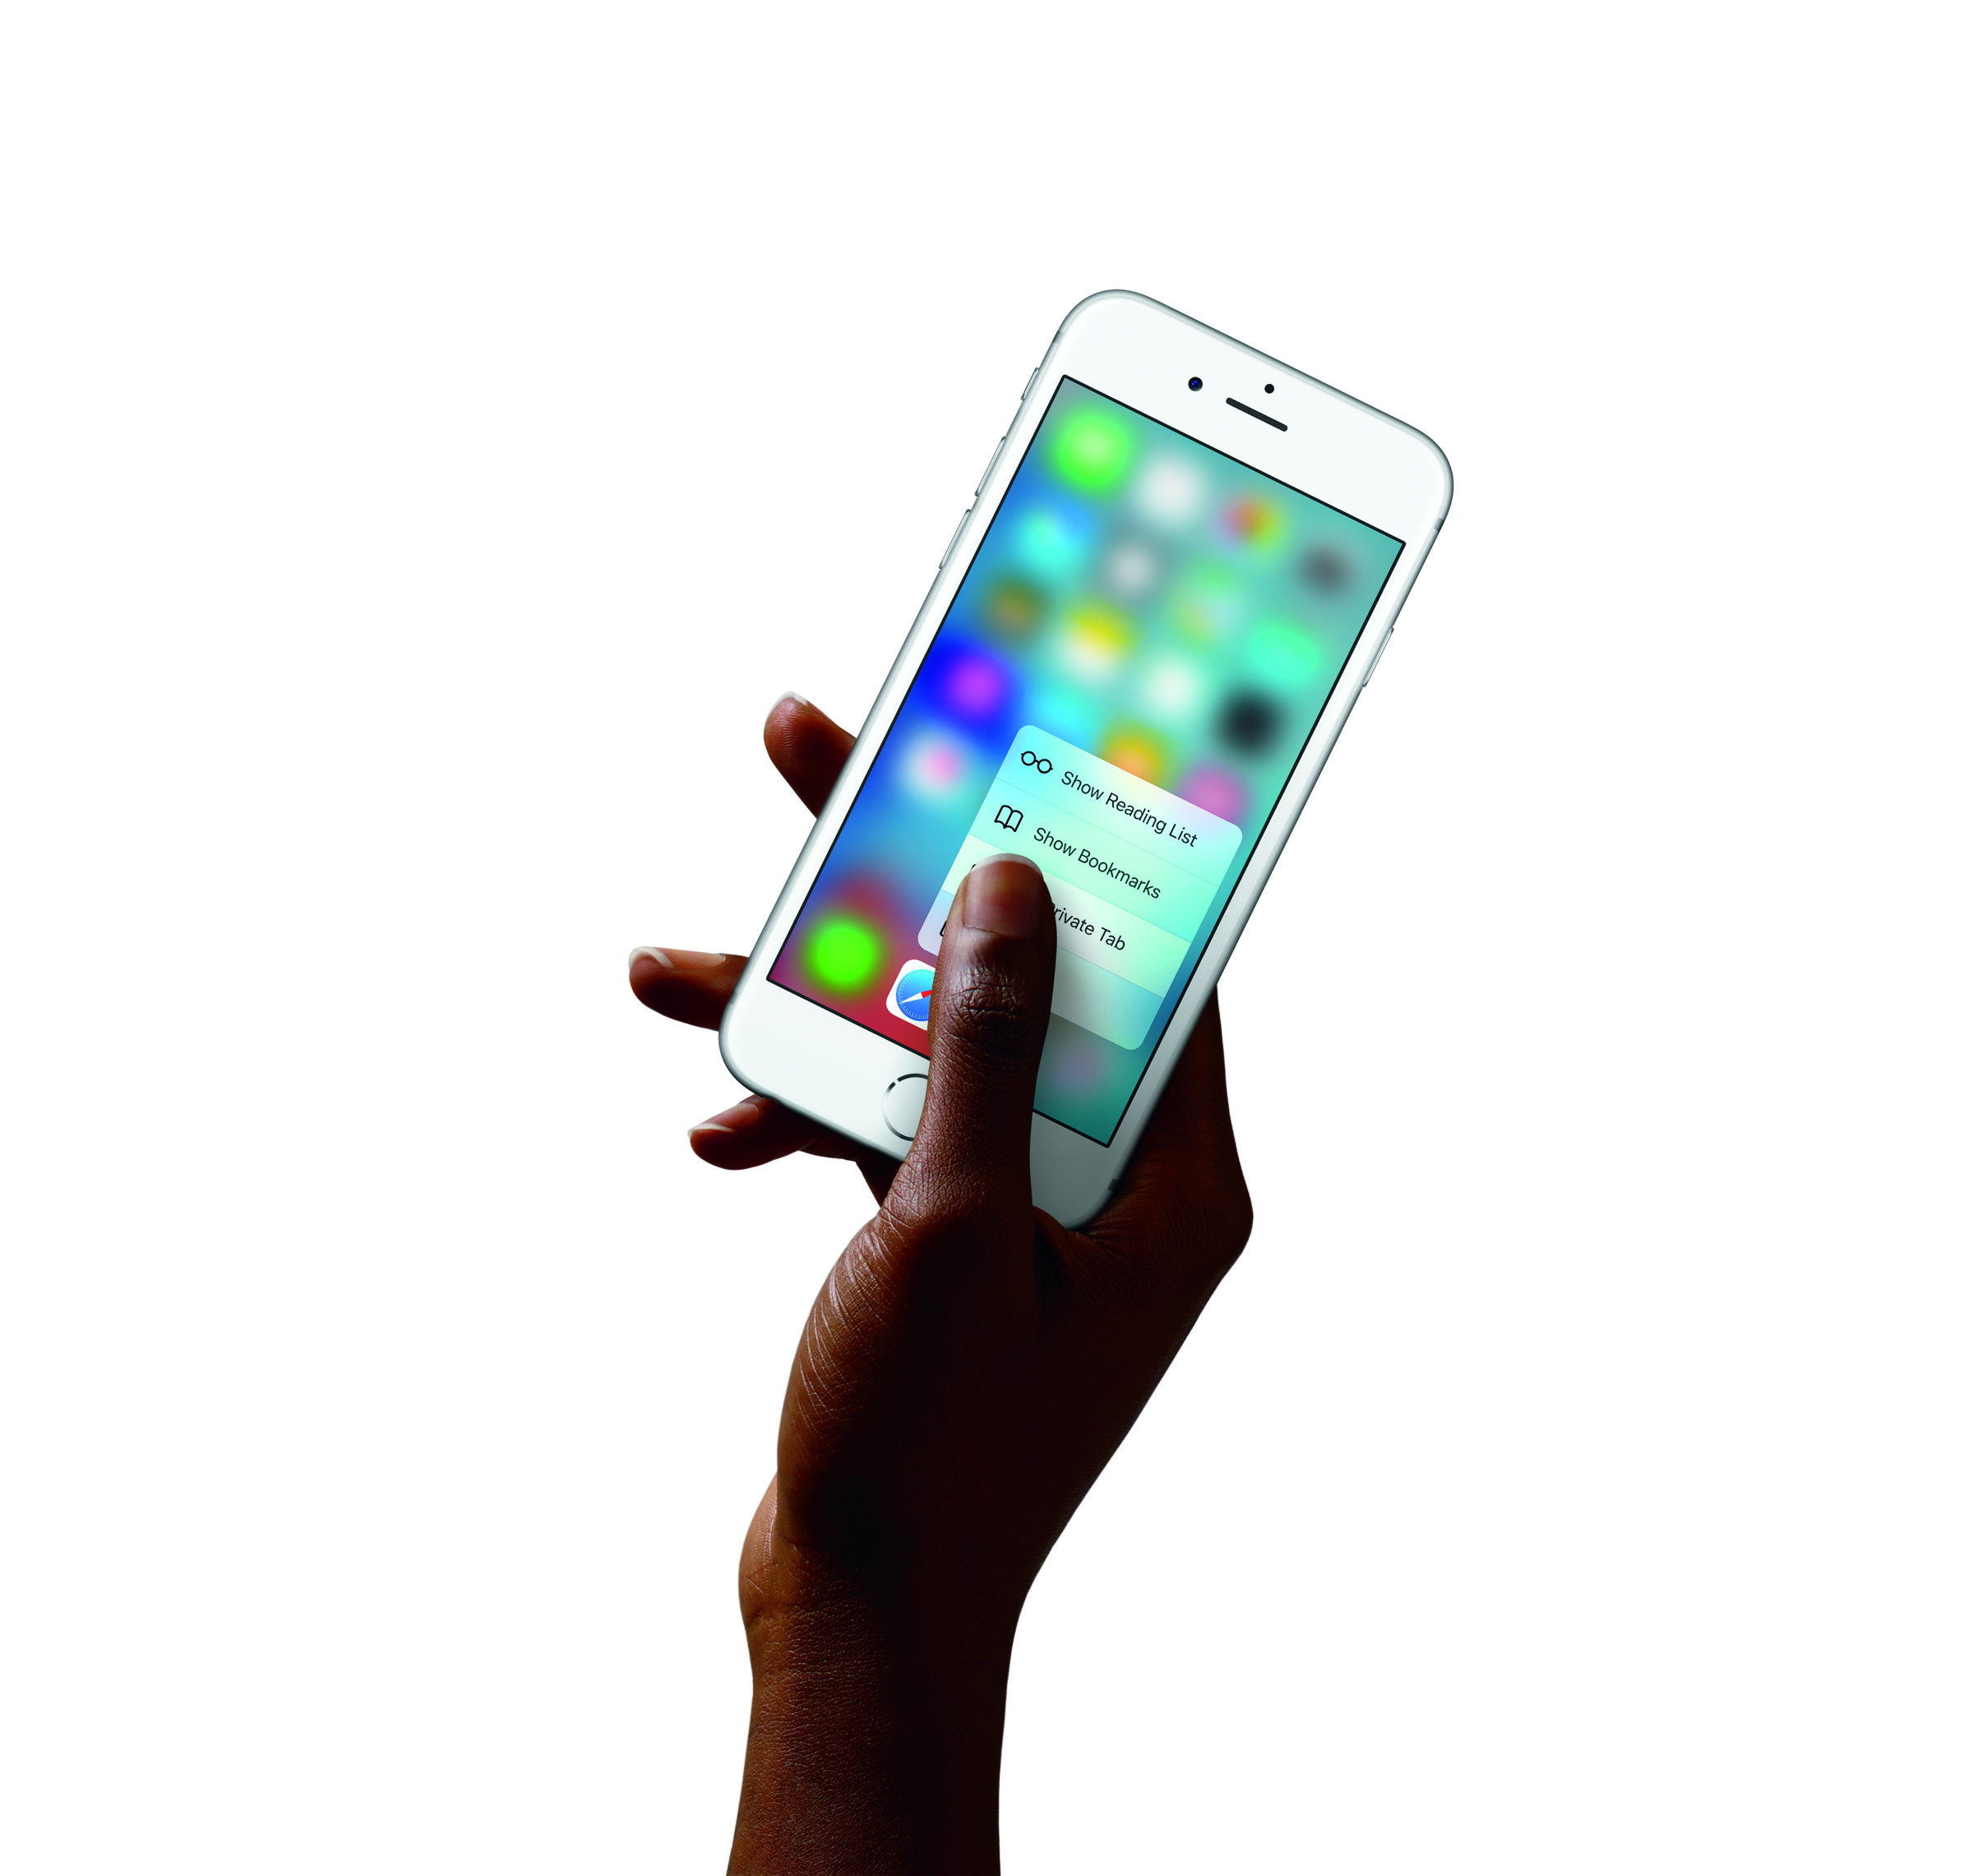 The iPhone 6S's new 3D multi-touch interface